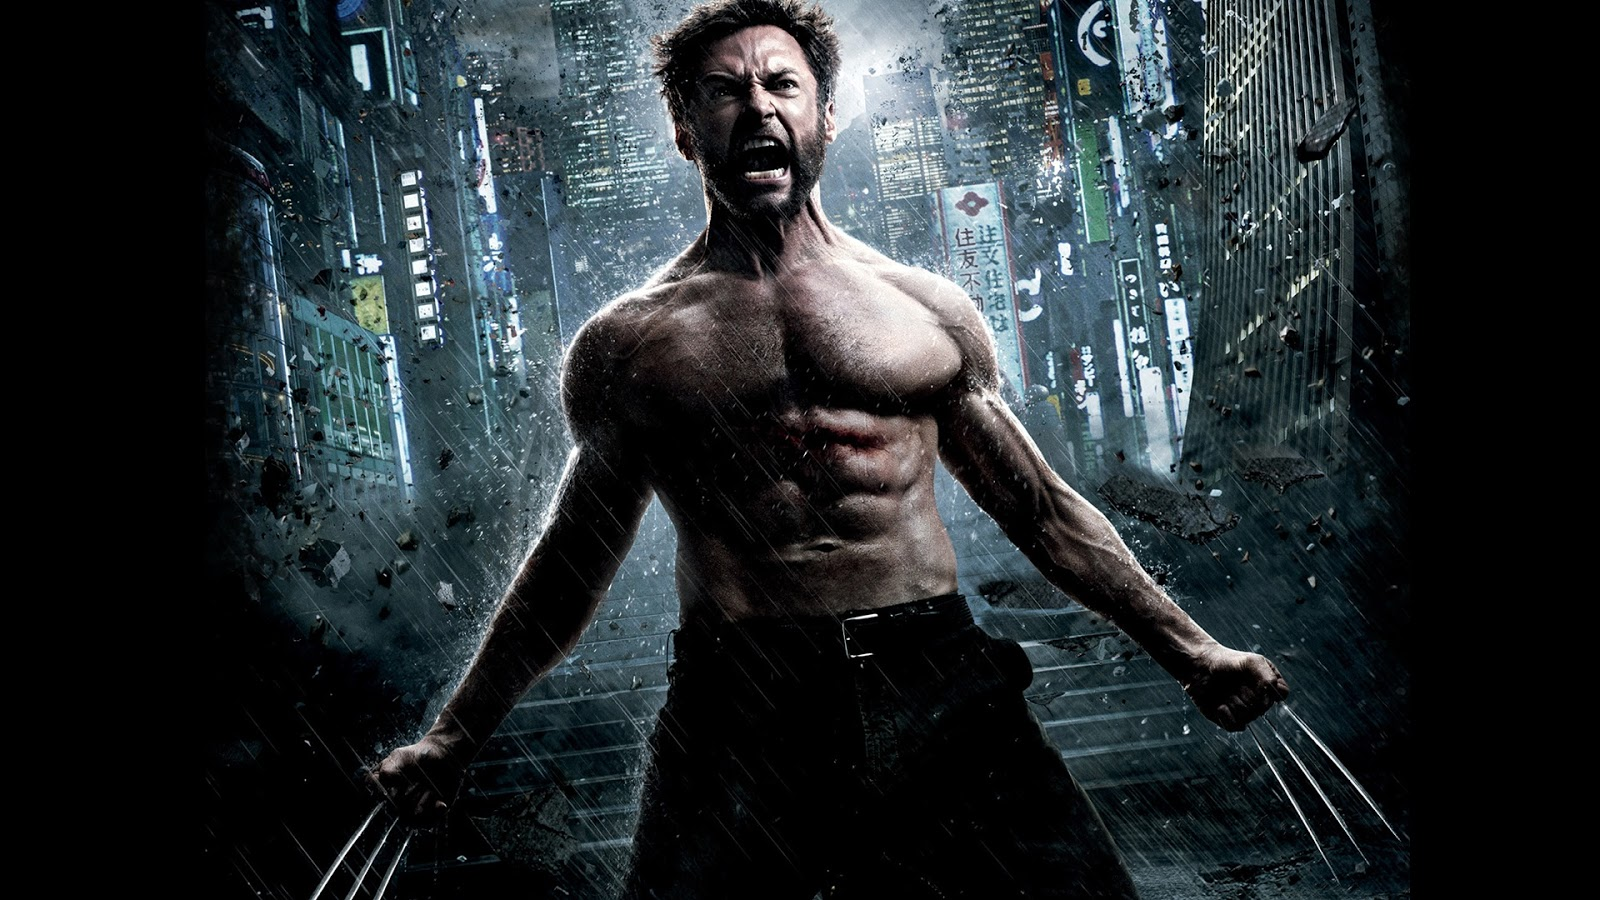 Hugh Jackman Wallpapers Hd: IT'S ALL ABOUT HOLLYWOOD STARS: August 2013